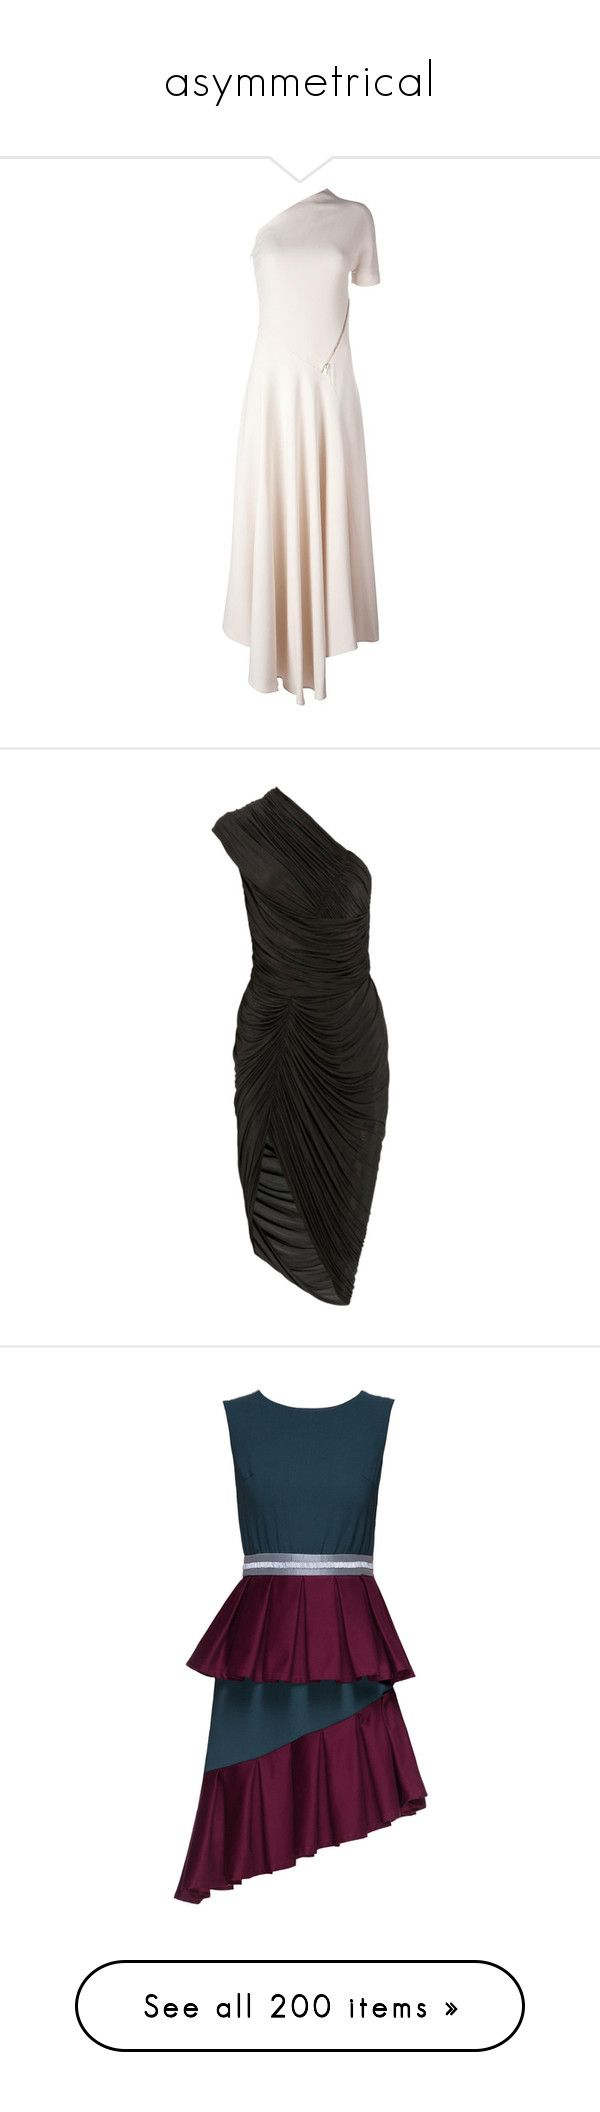 """asymmetrical"" by jeniferkcarsrud ❤ liked on Polyvore featuring dresses, nude, off one shoulder dress, one shoulder pleated dress, stella mccartney dress, pleated dress, one sleeve short dresses, black, asymmetrical neckline dress and cocktail draped dress"